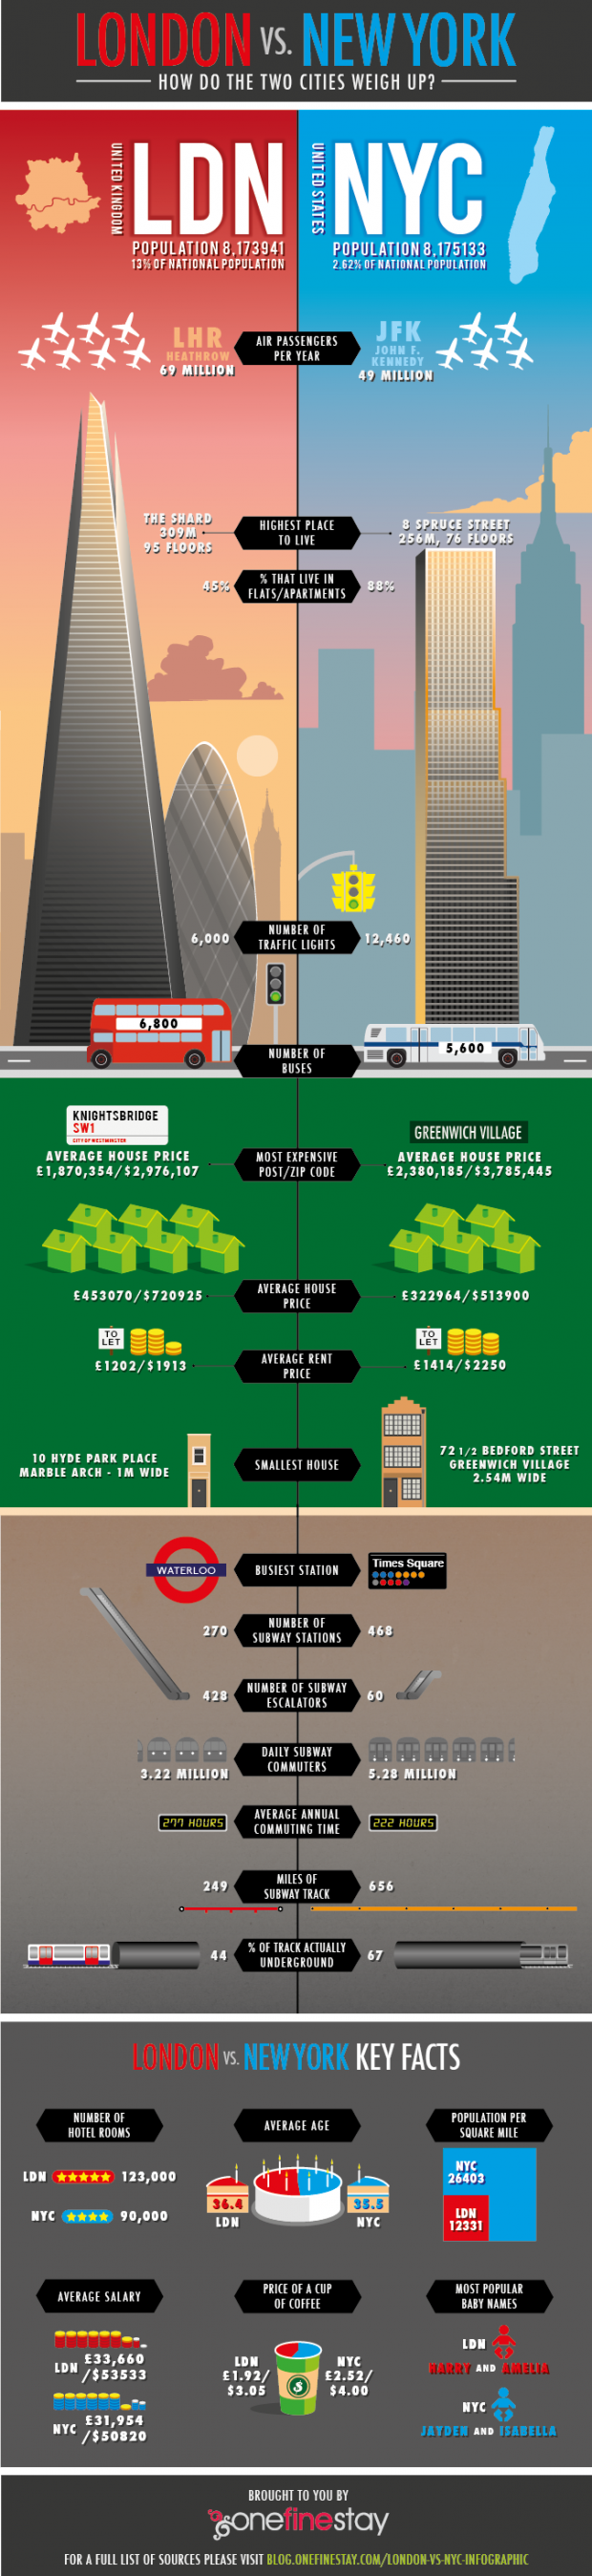 Comparing London and New York City